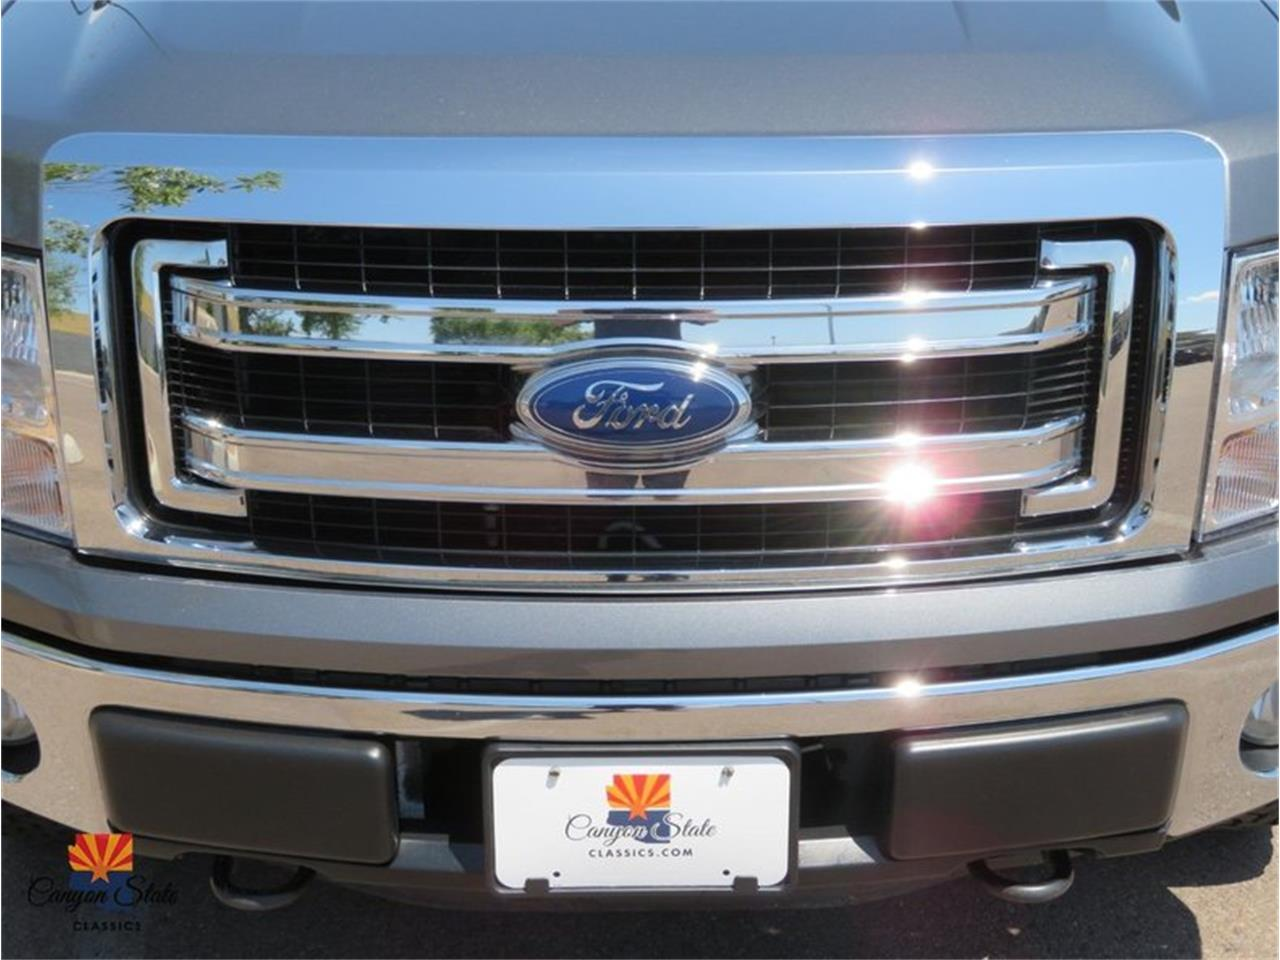 2014 Ford F150 for sale in Tempe, AZ – photo 27